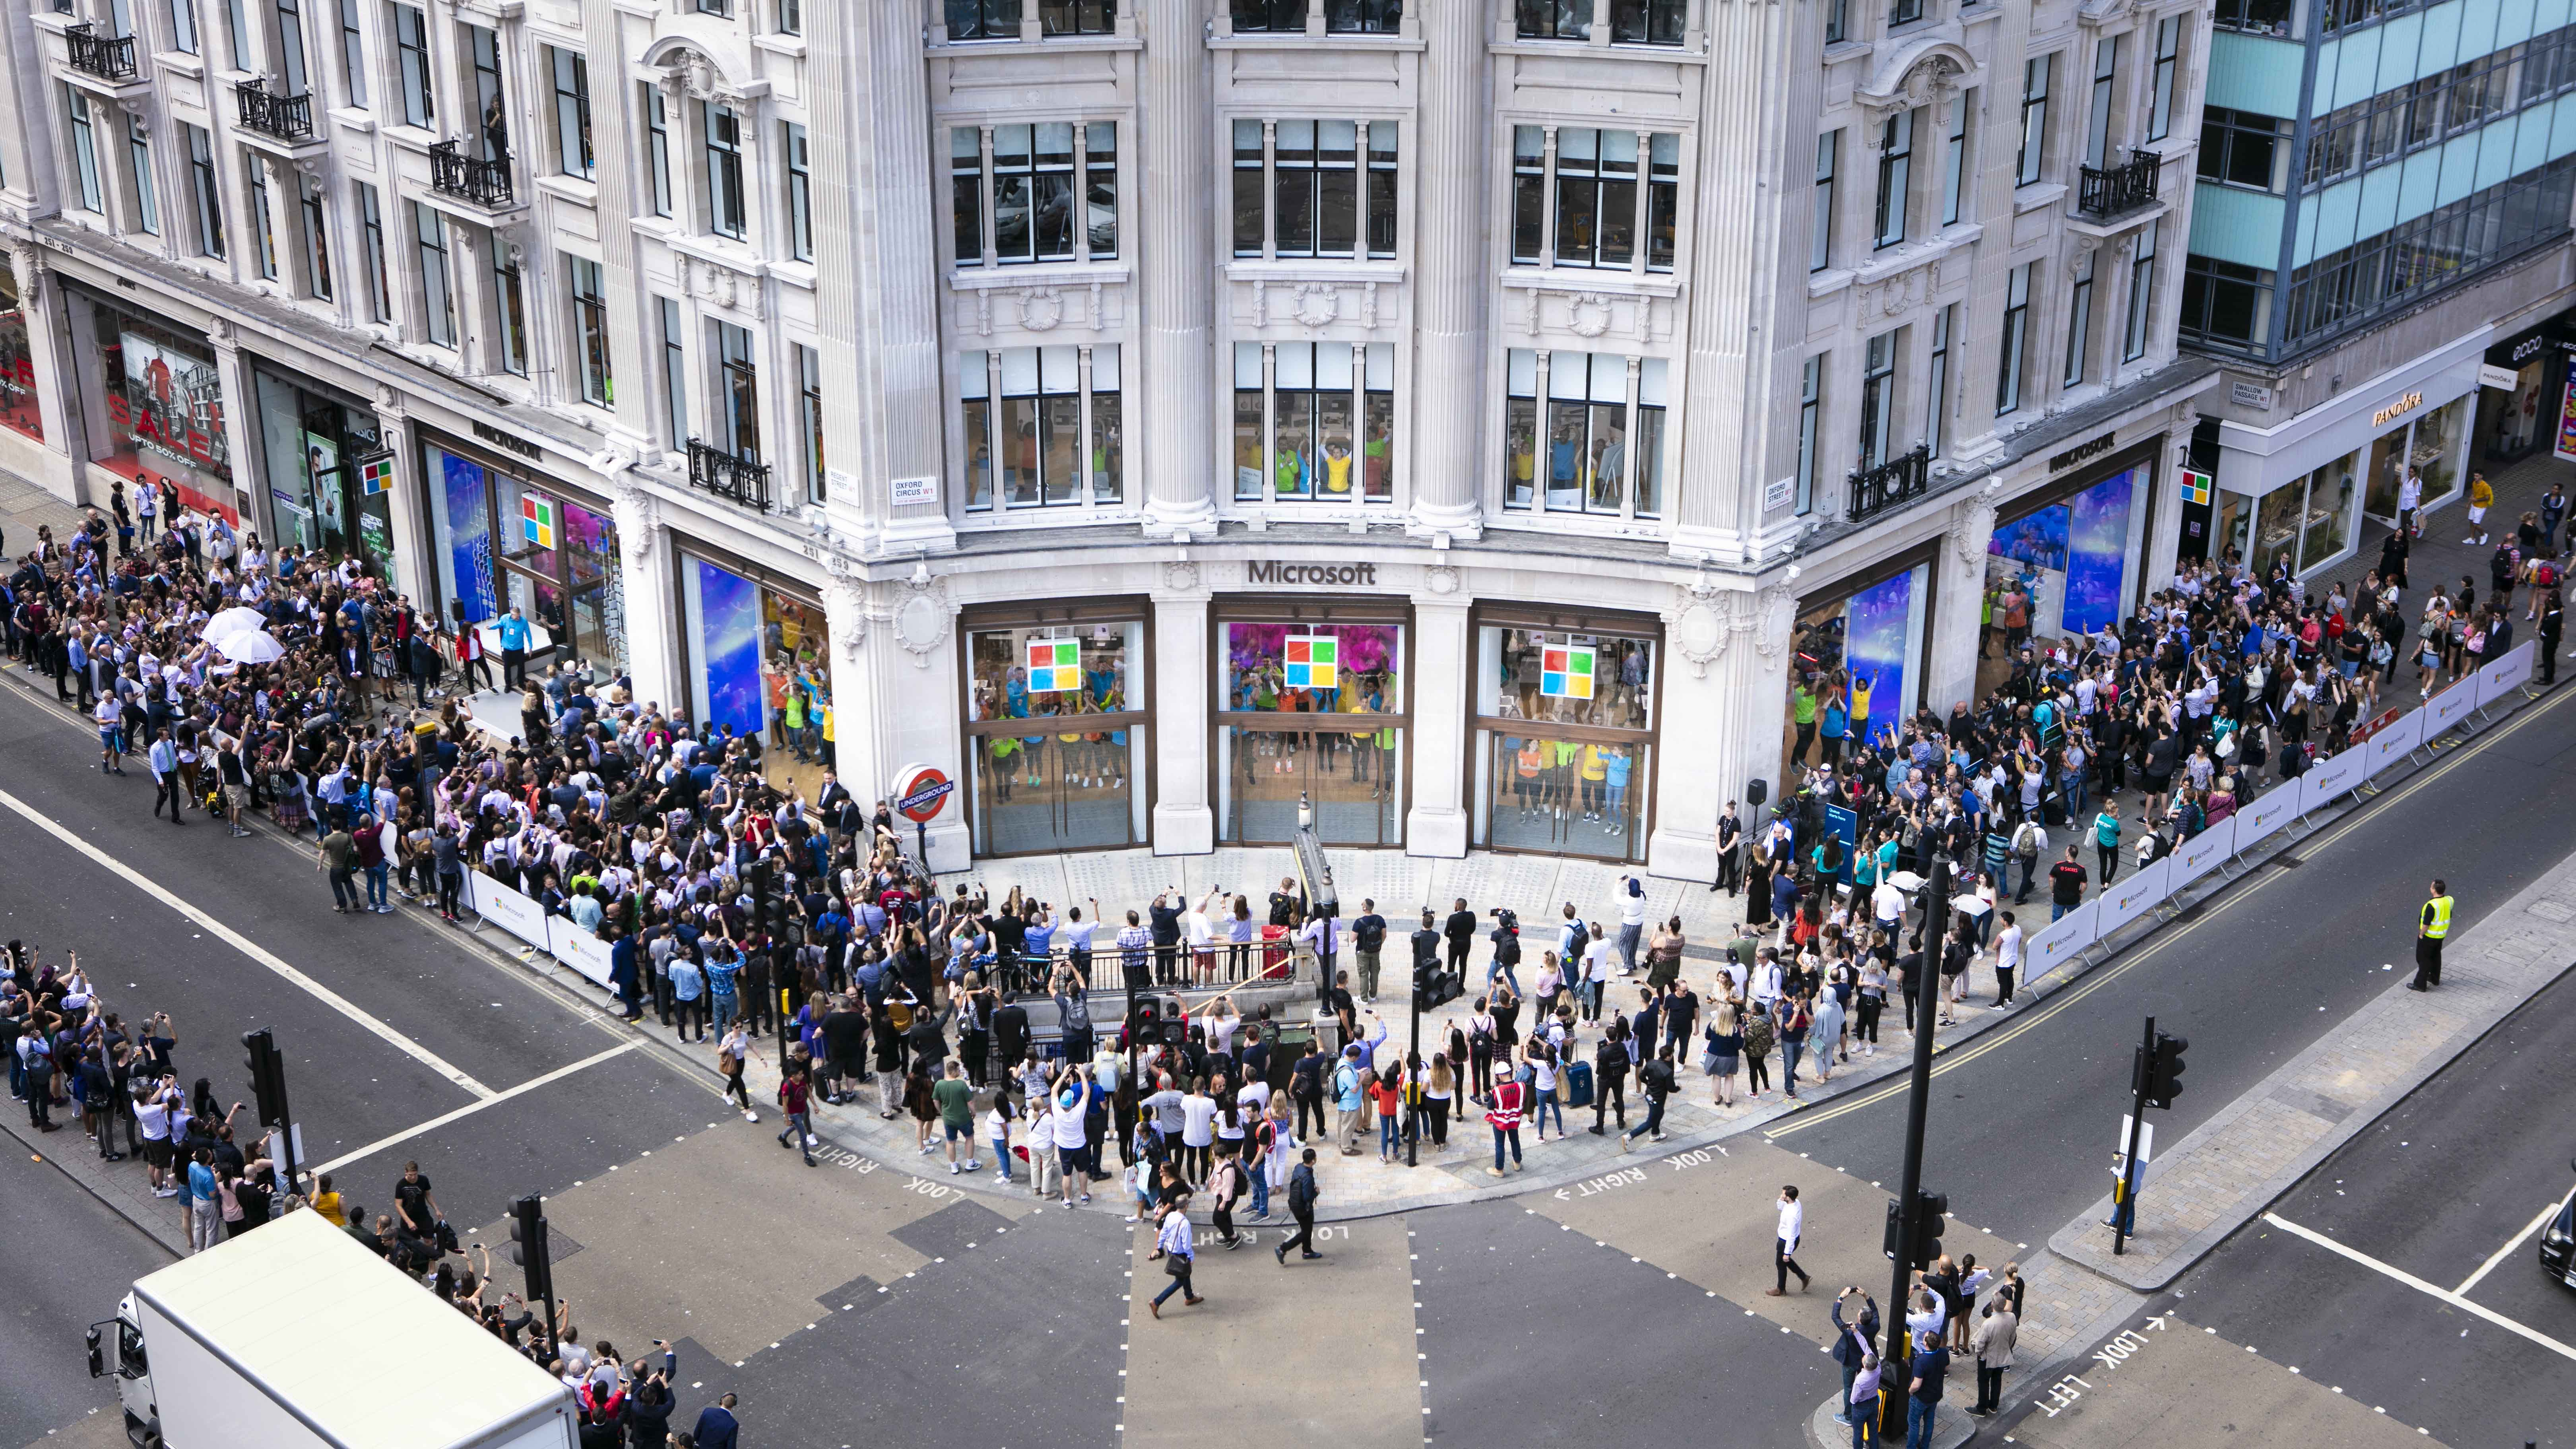 Queues Outside Microsoft Retail Store in Oxford St. - Mace Group